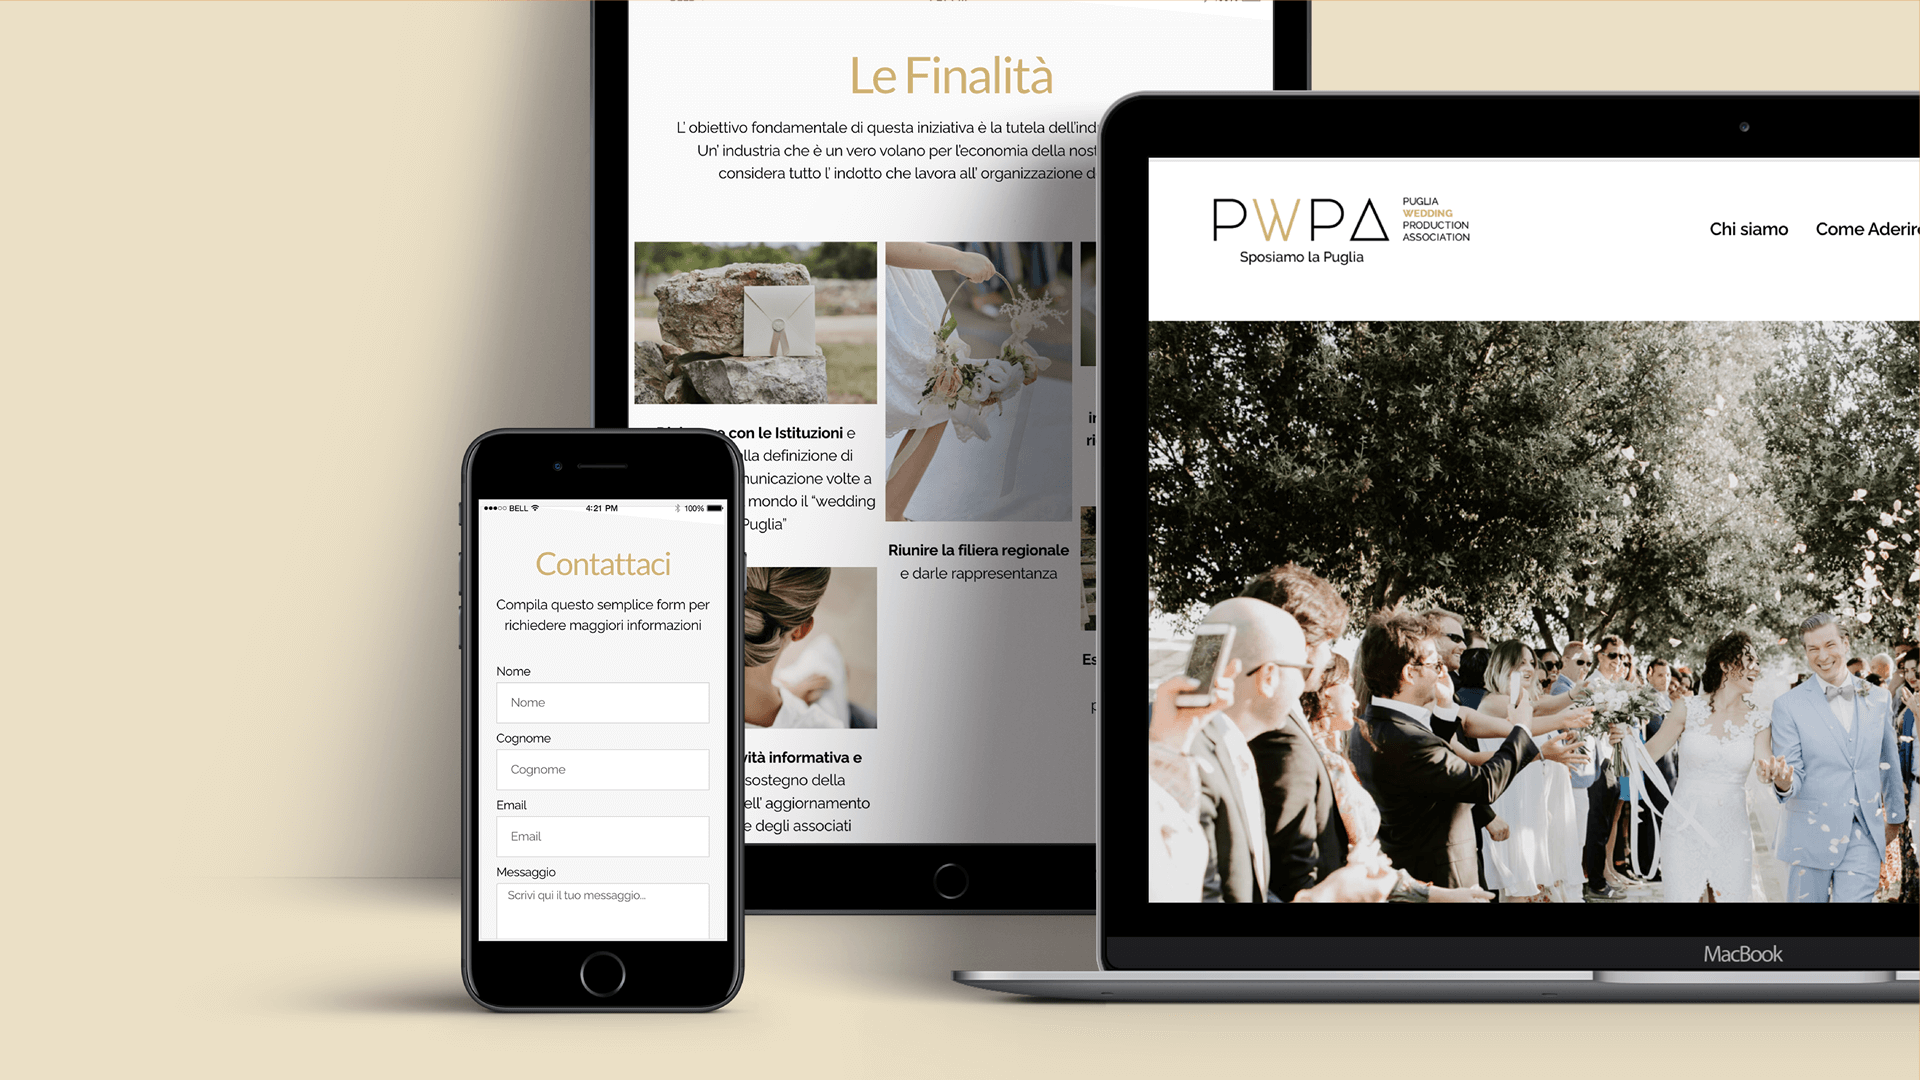 PWPA | Puglia Wedding Production Association